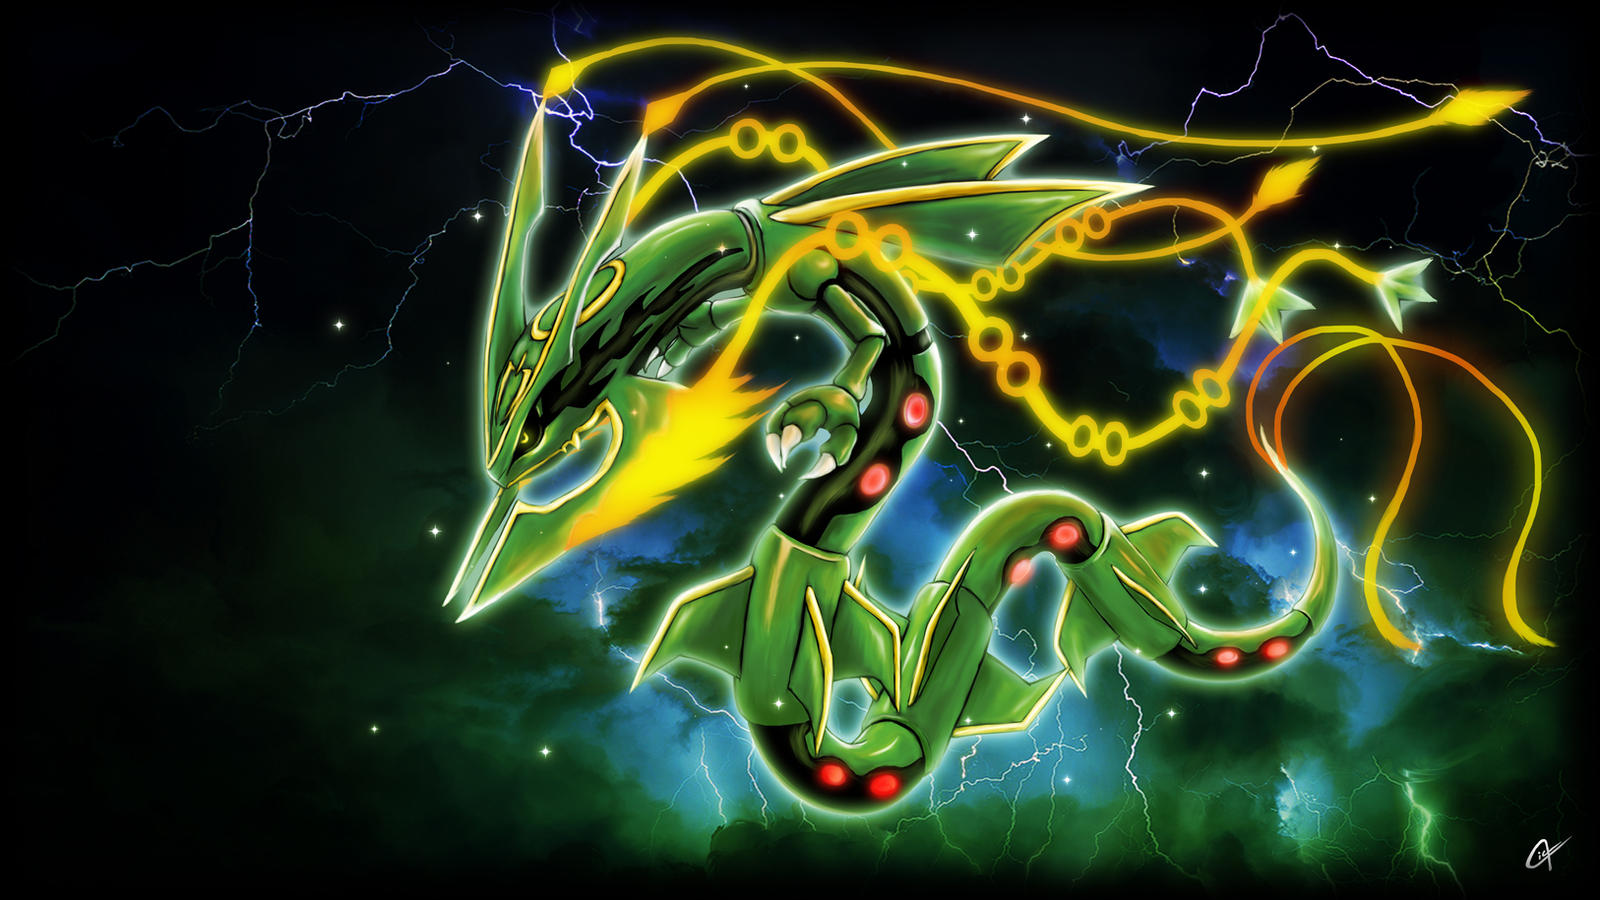 emerald rayquaza wallpapers - photo #38